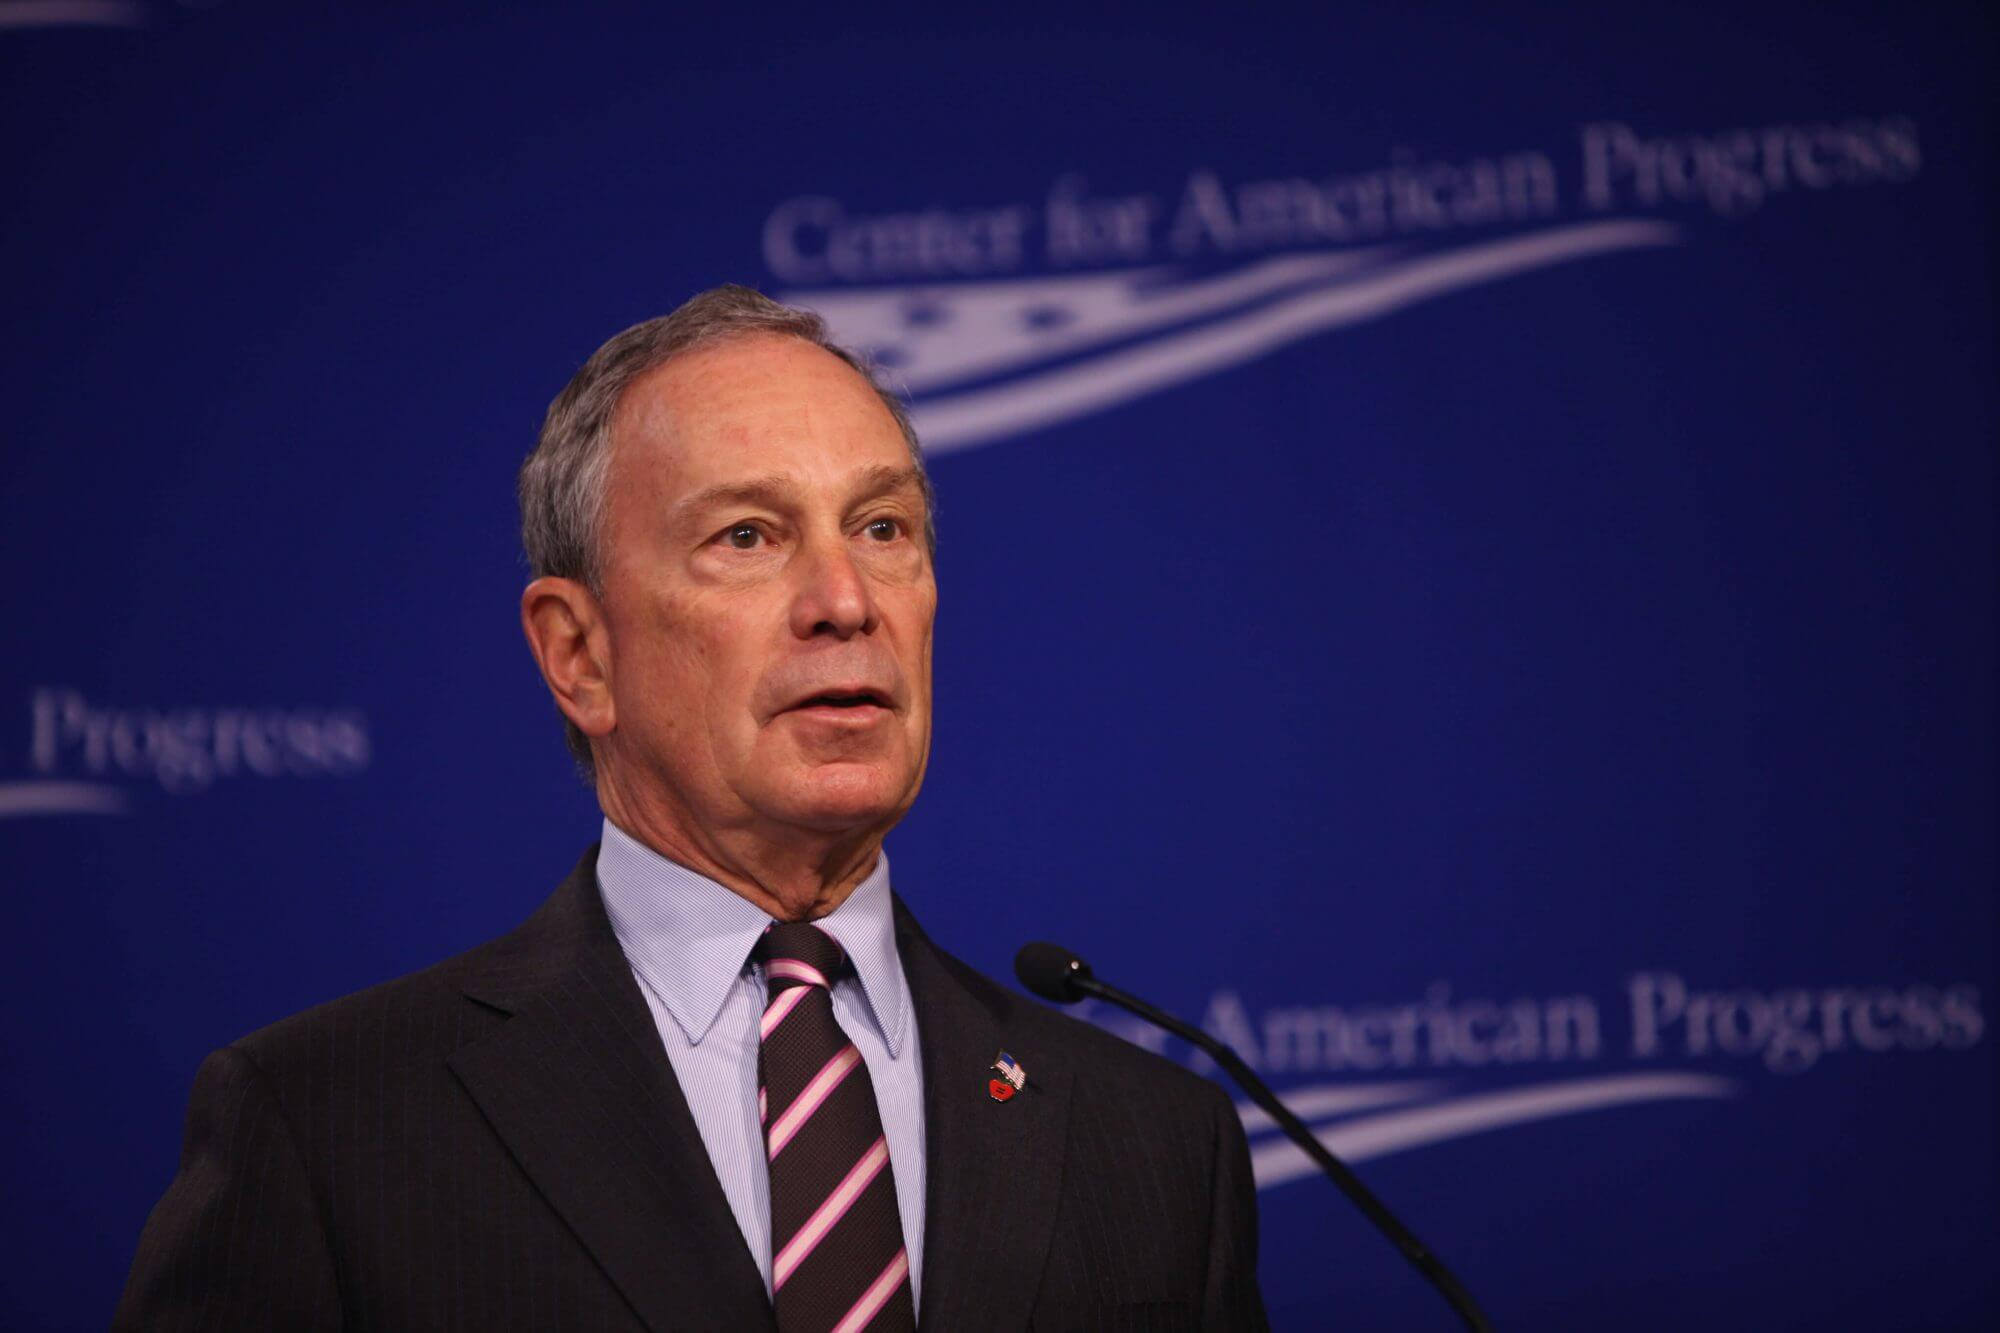 A Bloomberg presidency would have focused on health, experts say